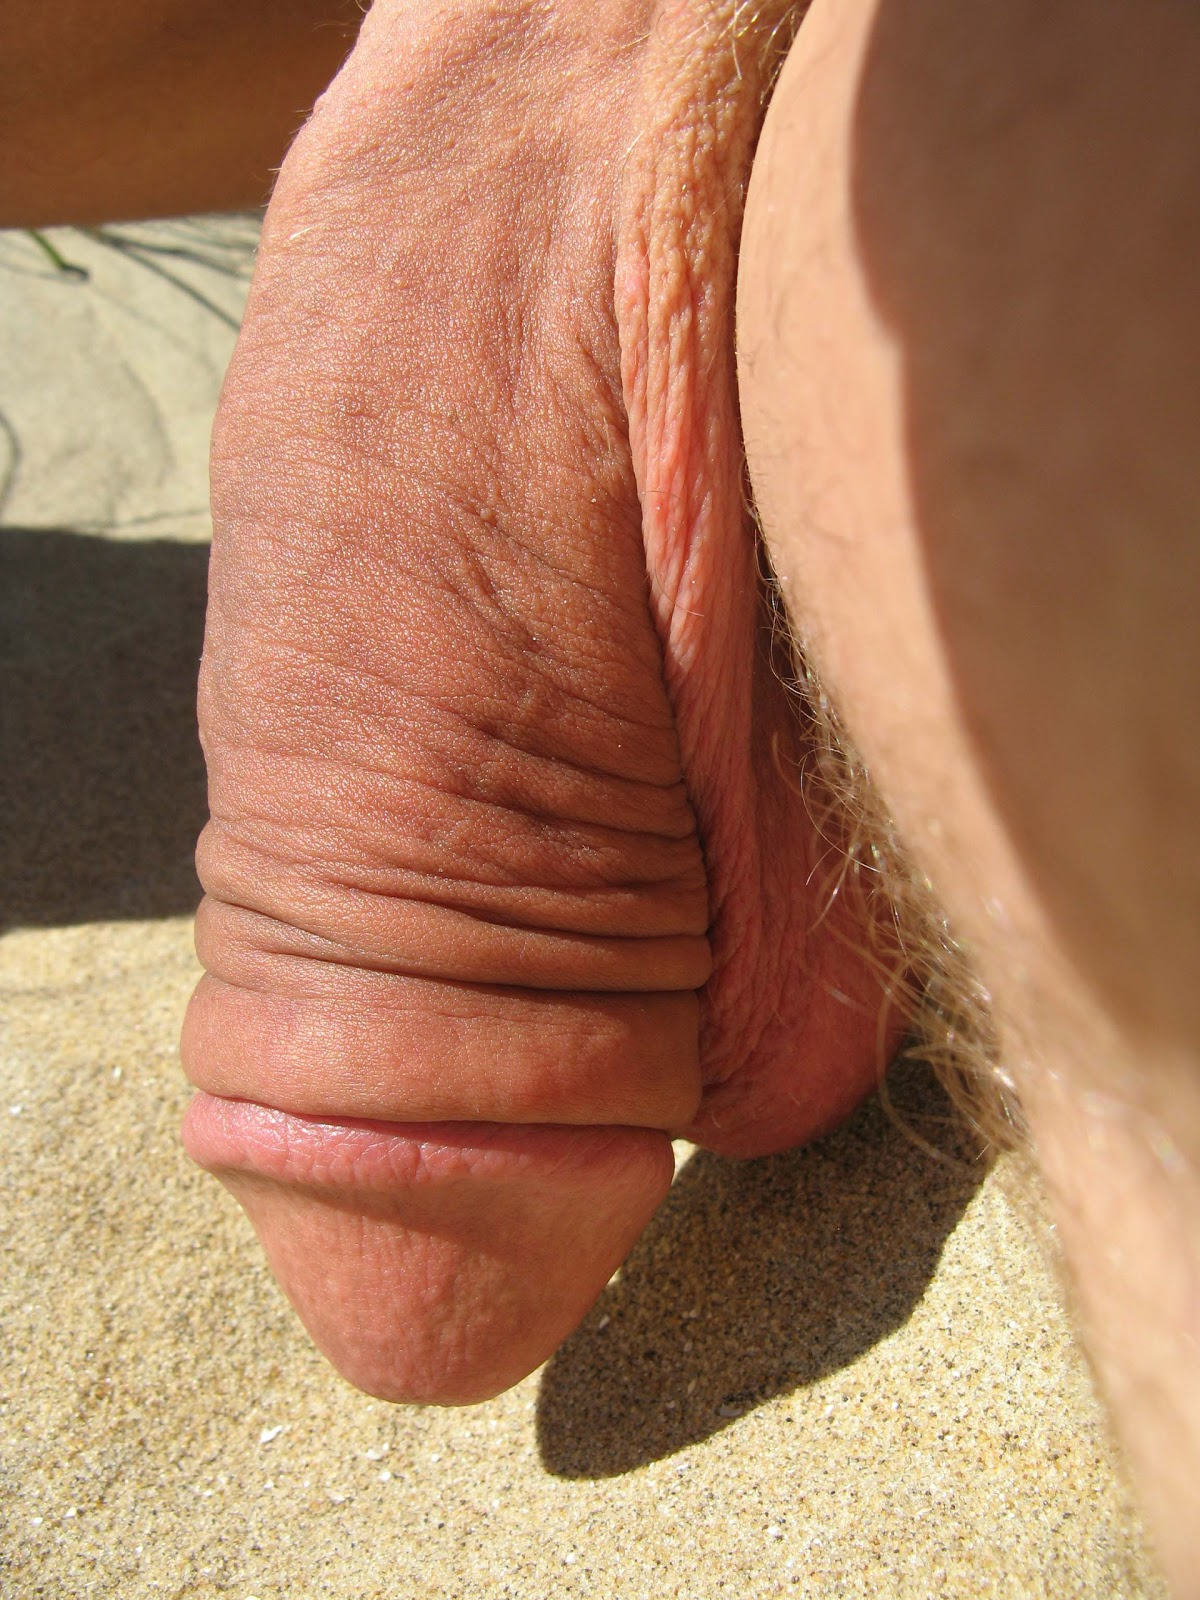 Big flaccid cock photo